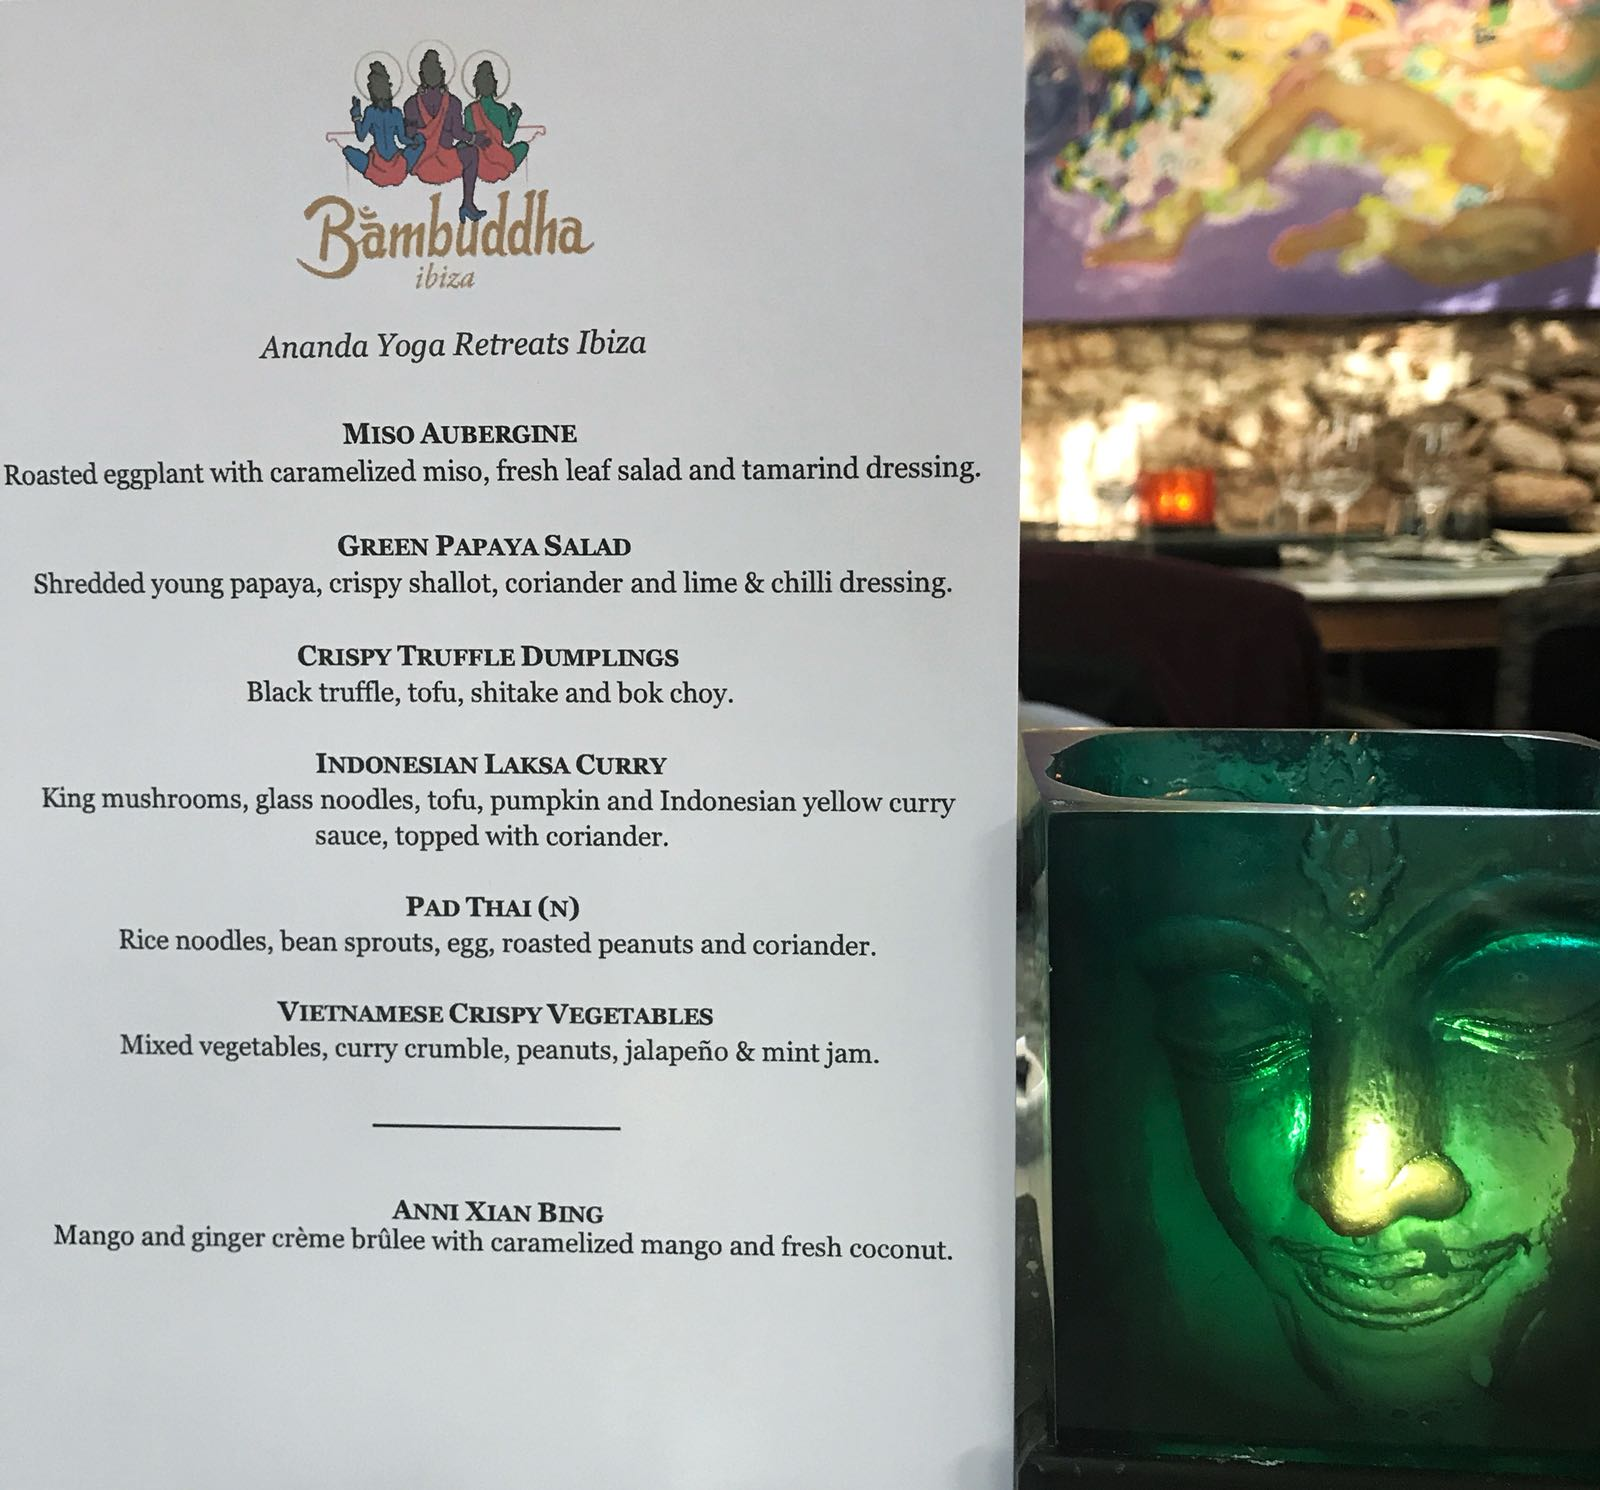 Ananda's very own Bambuddha Menu